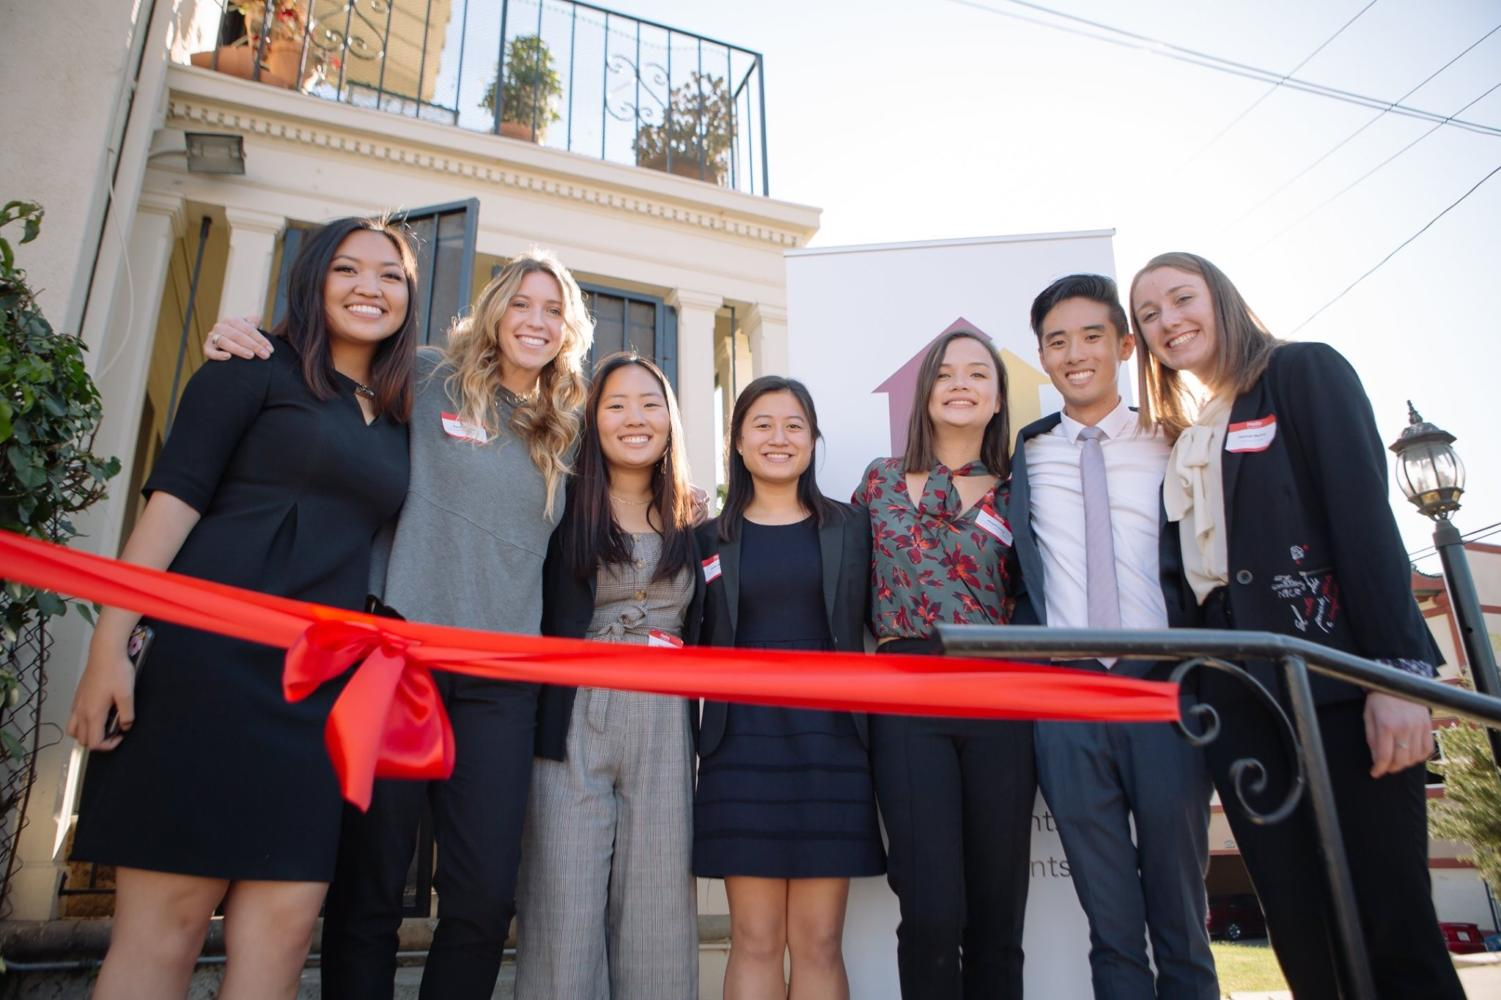 Macey Ibalio, Emma Dessau, Esther Cha of Coppell, Cathy Wang, Abigail Leung, Matthew Lee and Hannah Mulroe celebrate the opening of the Trojan Shelter on Nov. 1. The Trojan Shelter is a student run homeless shelter serving those attending the University of Southern California.